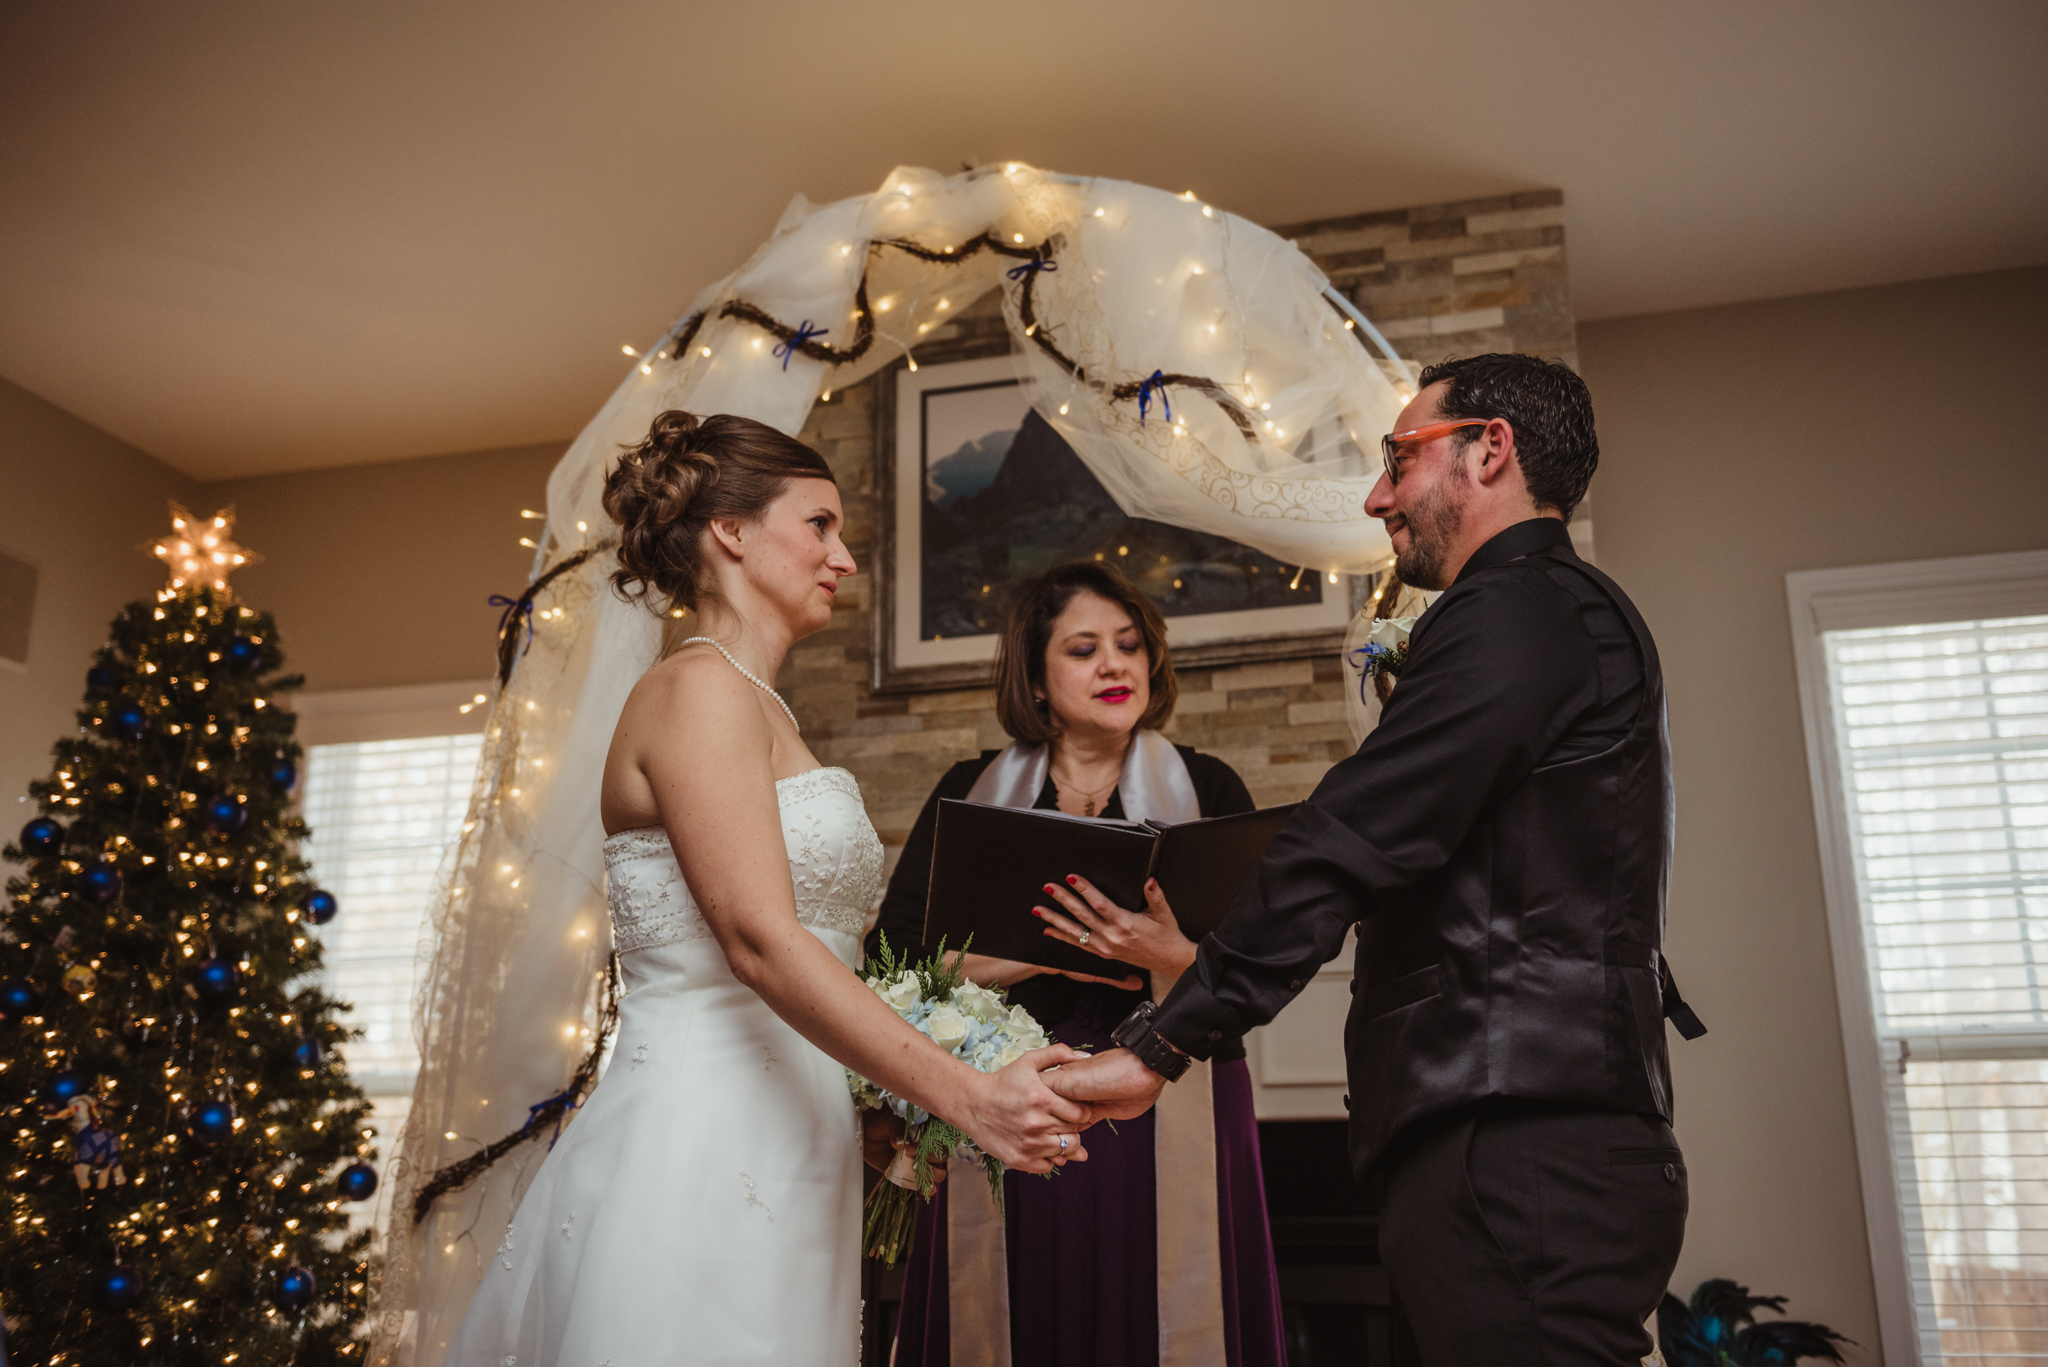 the-bride-and-groom-exchange-vows-at-their-intimate-home-wedding-in-Raleigh.jpg